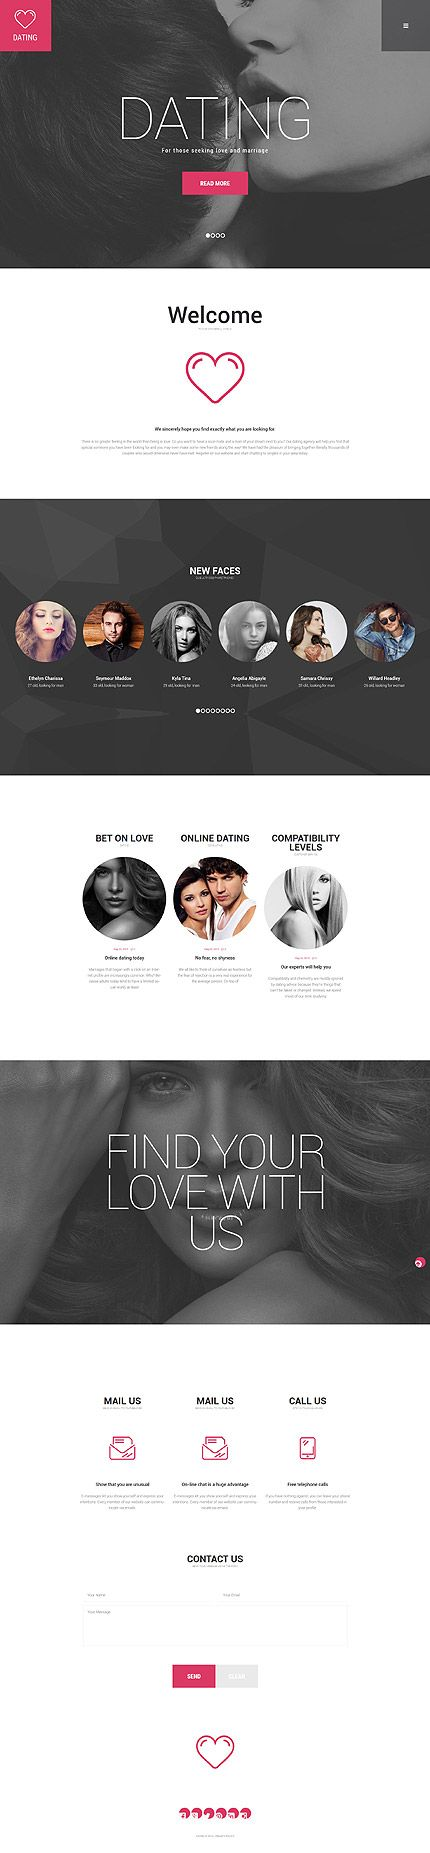 Dating • Most Popular • Espresso Web Inspiration at your Coffee Break! WordPress • Template